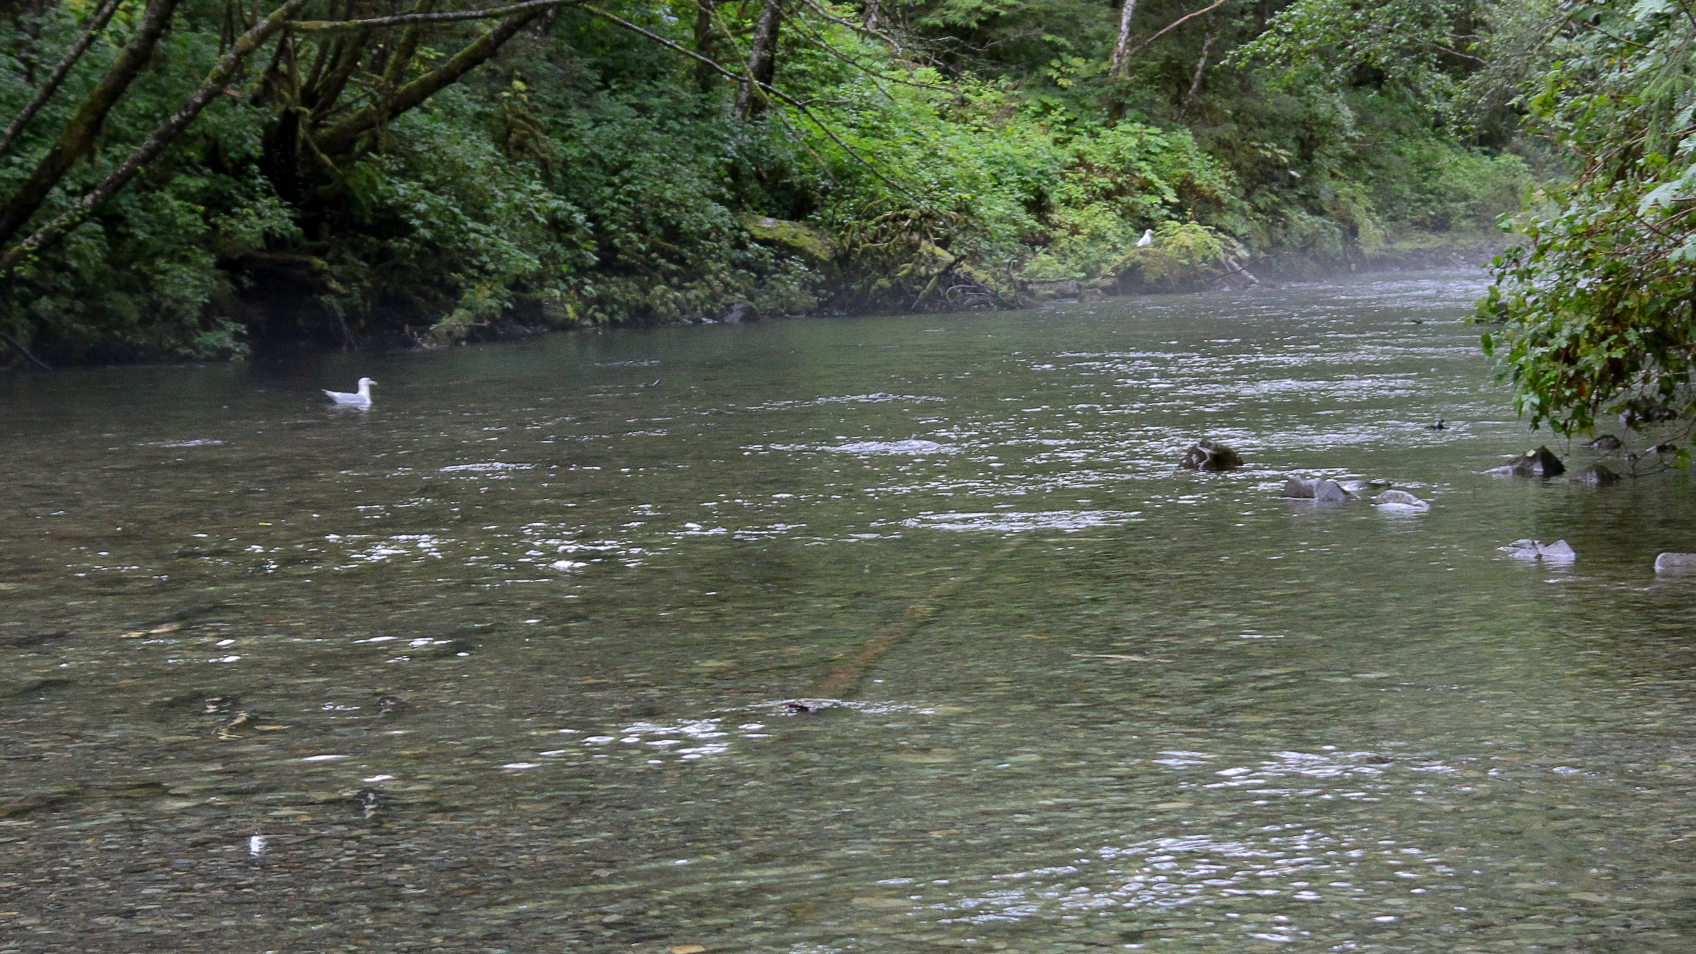 It might be a little hard to see, but this river was FILLED with hundreds of Salmon, migrating up the river!